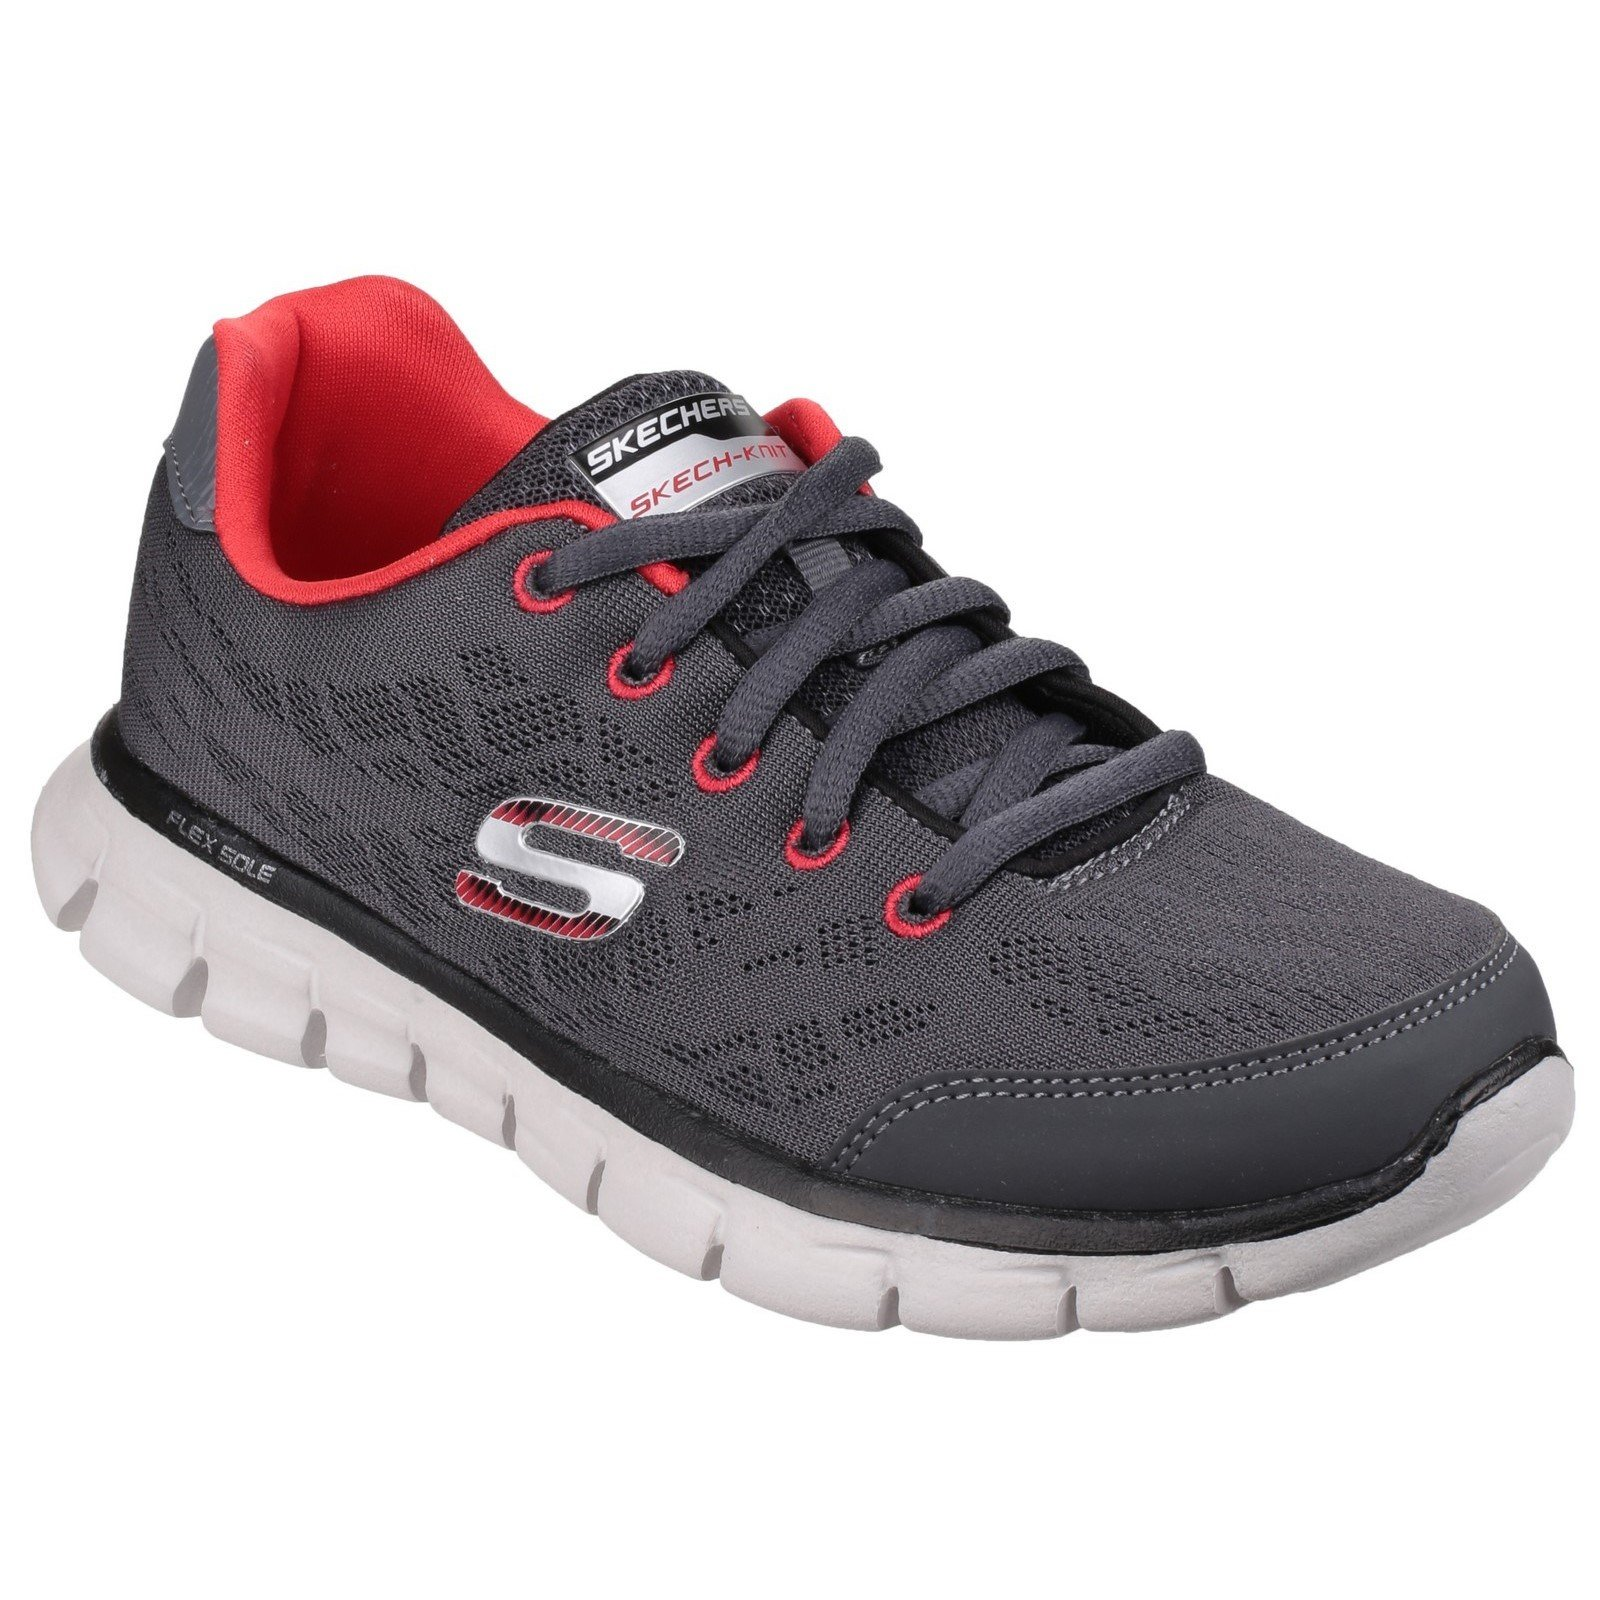 Skechers Kid's Synergy Fine Tune Lace up Trainer Multicolor 23918 - Grey/Red 5